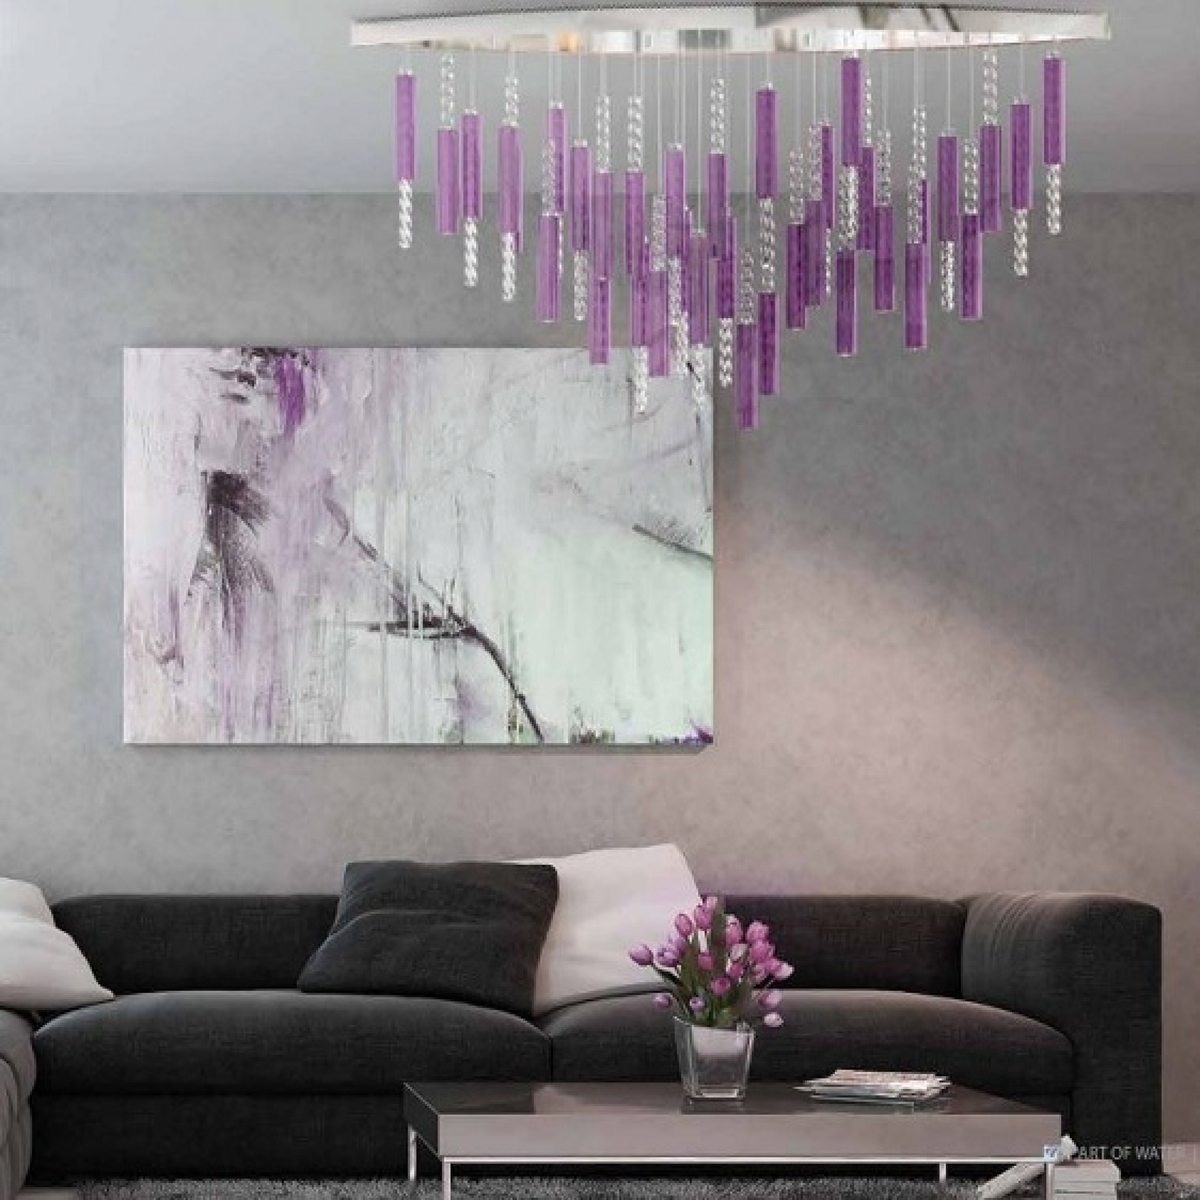 Chandelier FLARE 03 A – CH